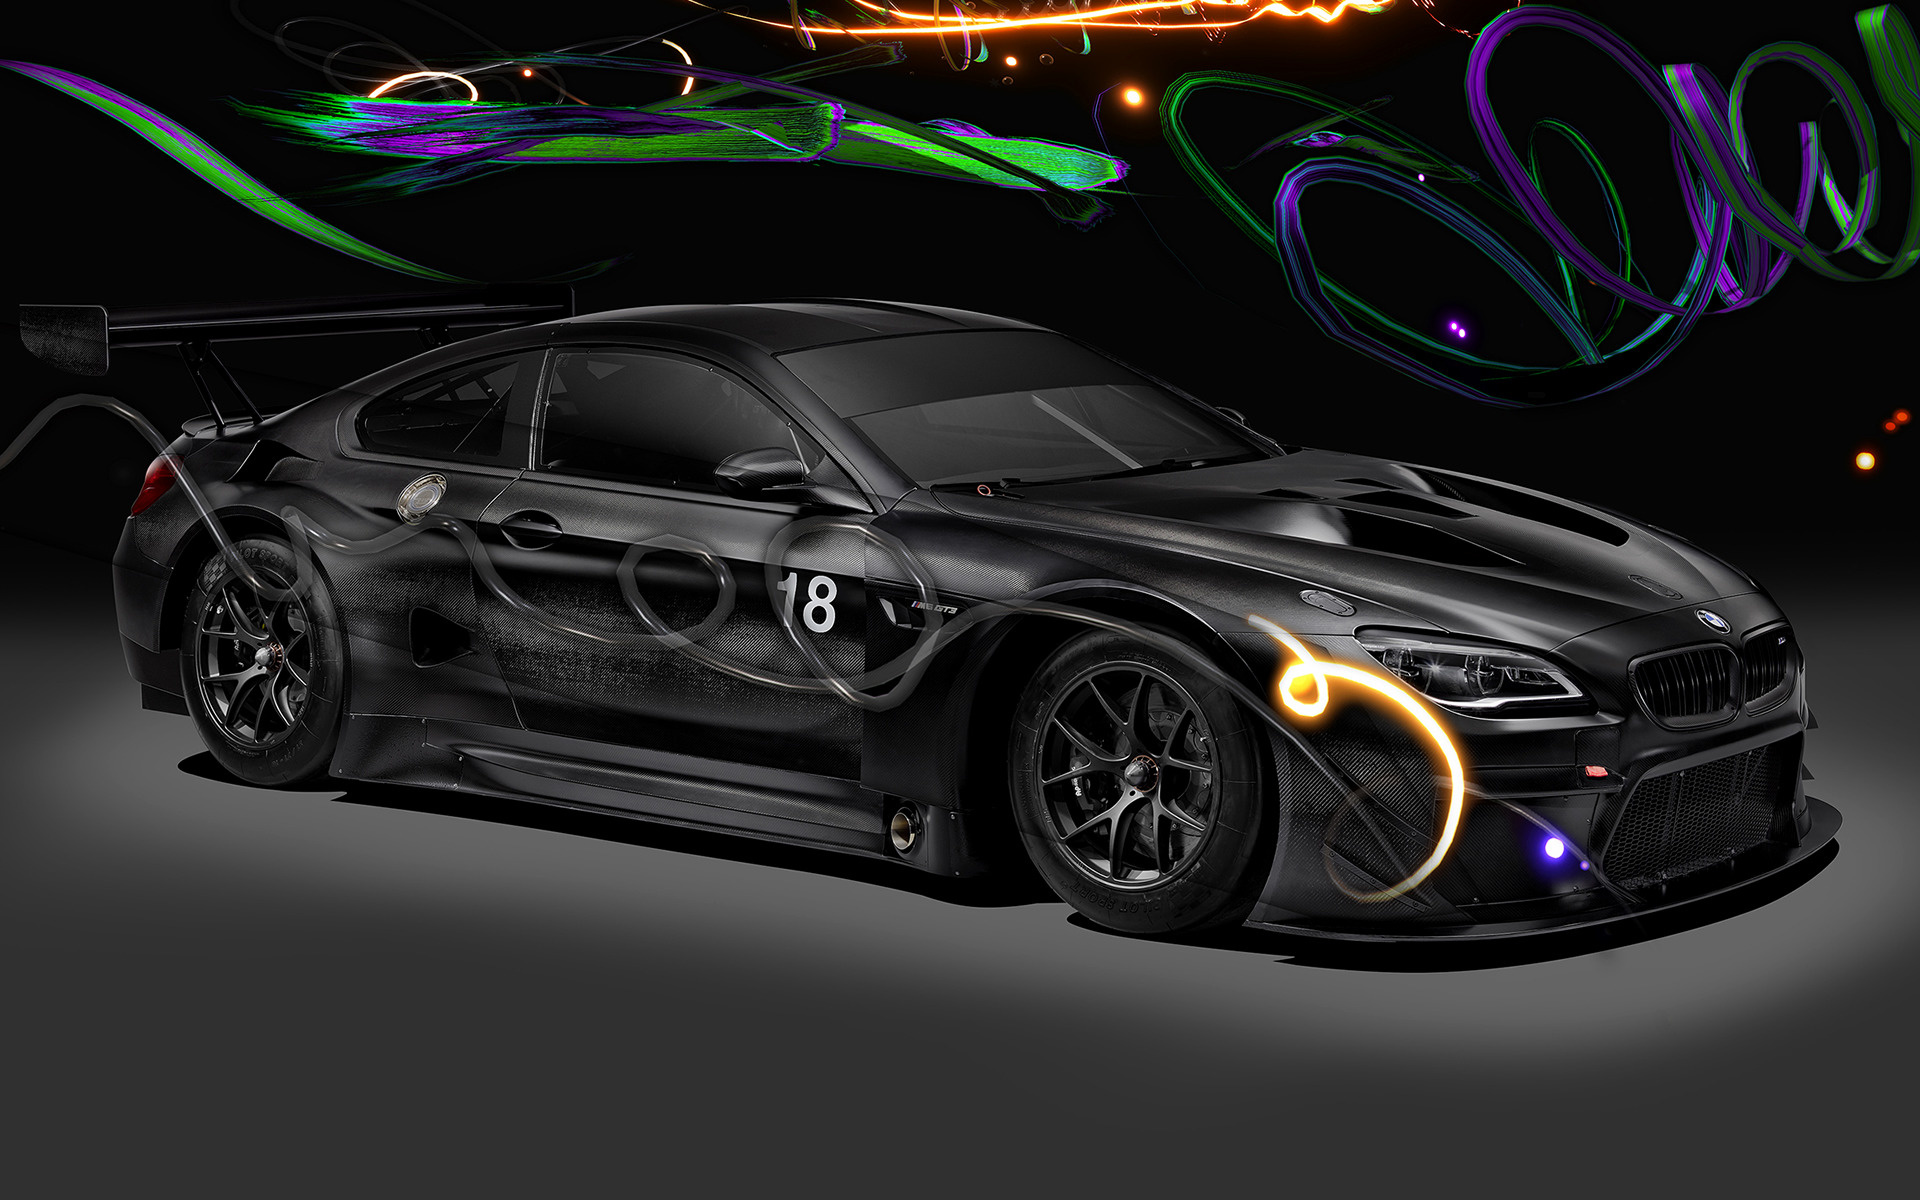 Rolls Royce Bentley >> 2017 BMW M6 GT3 Art Car by Cao Fei - Wallpapers and HD ...